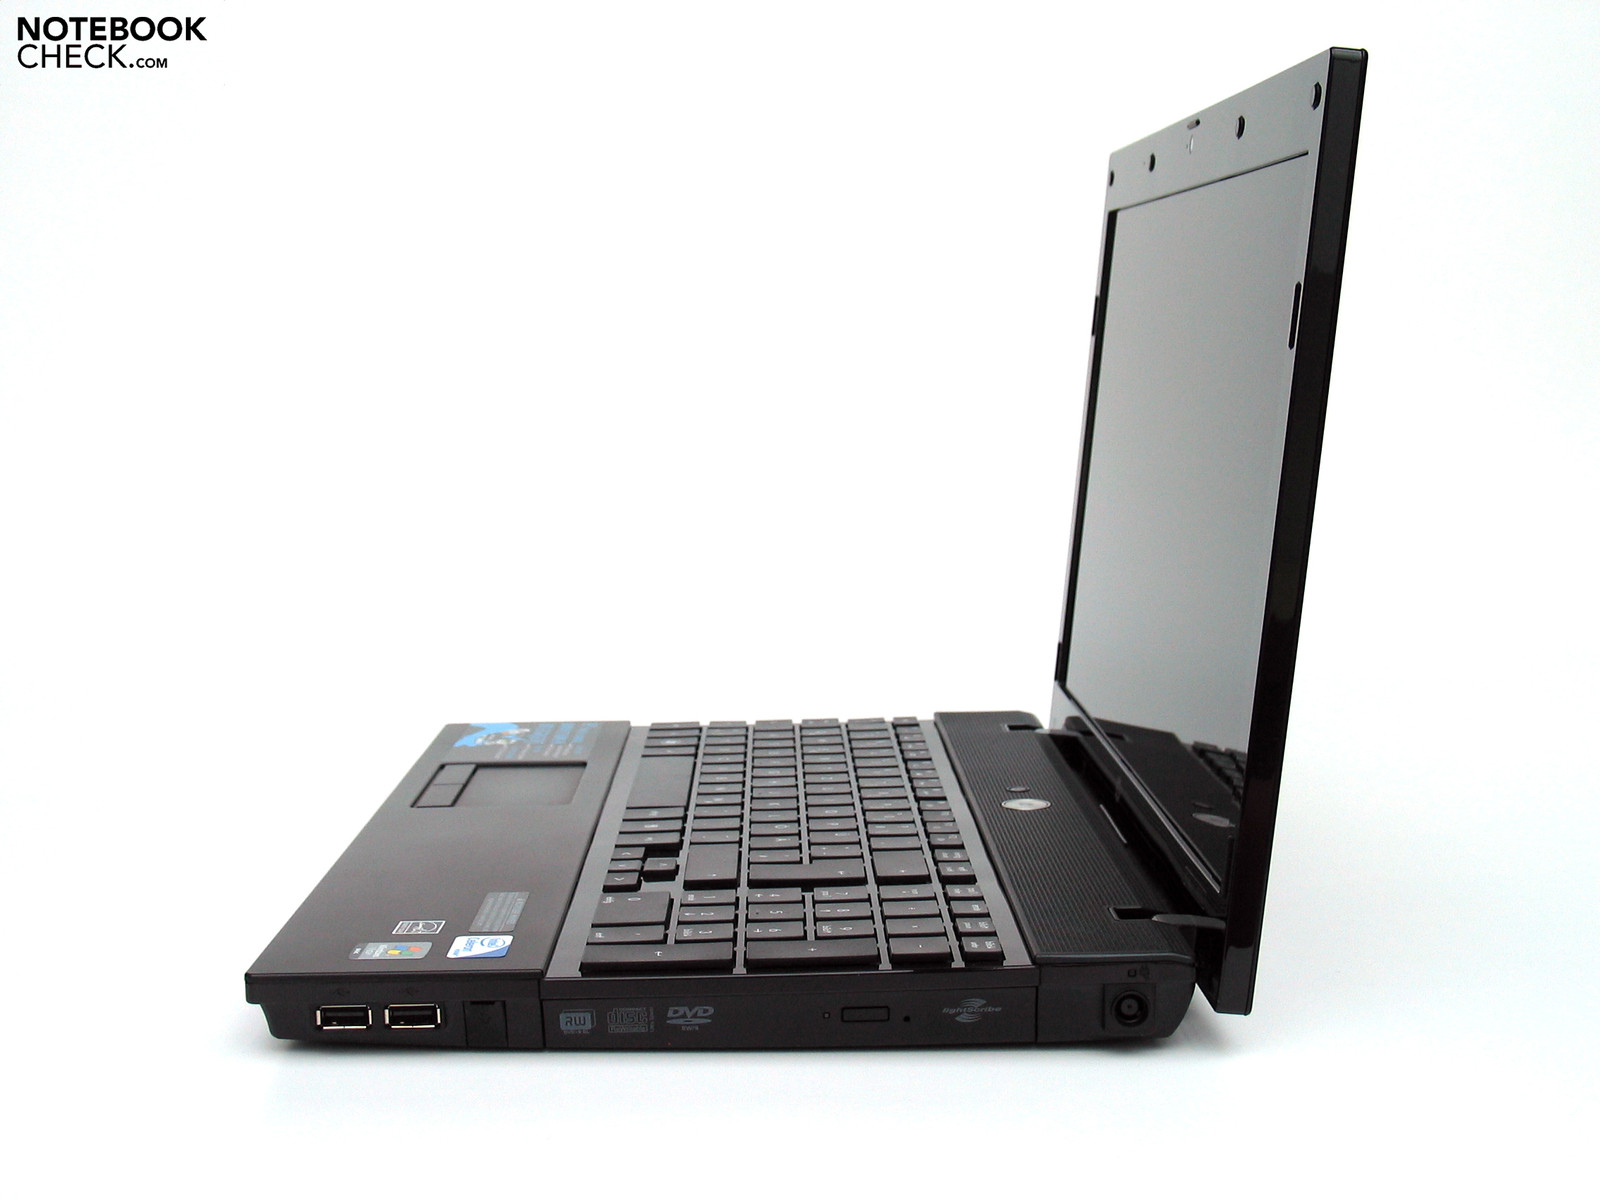 All the details about the HP ProBook 4515s laptop